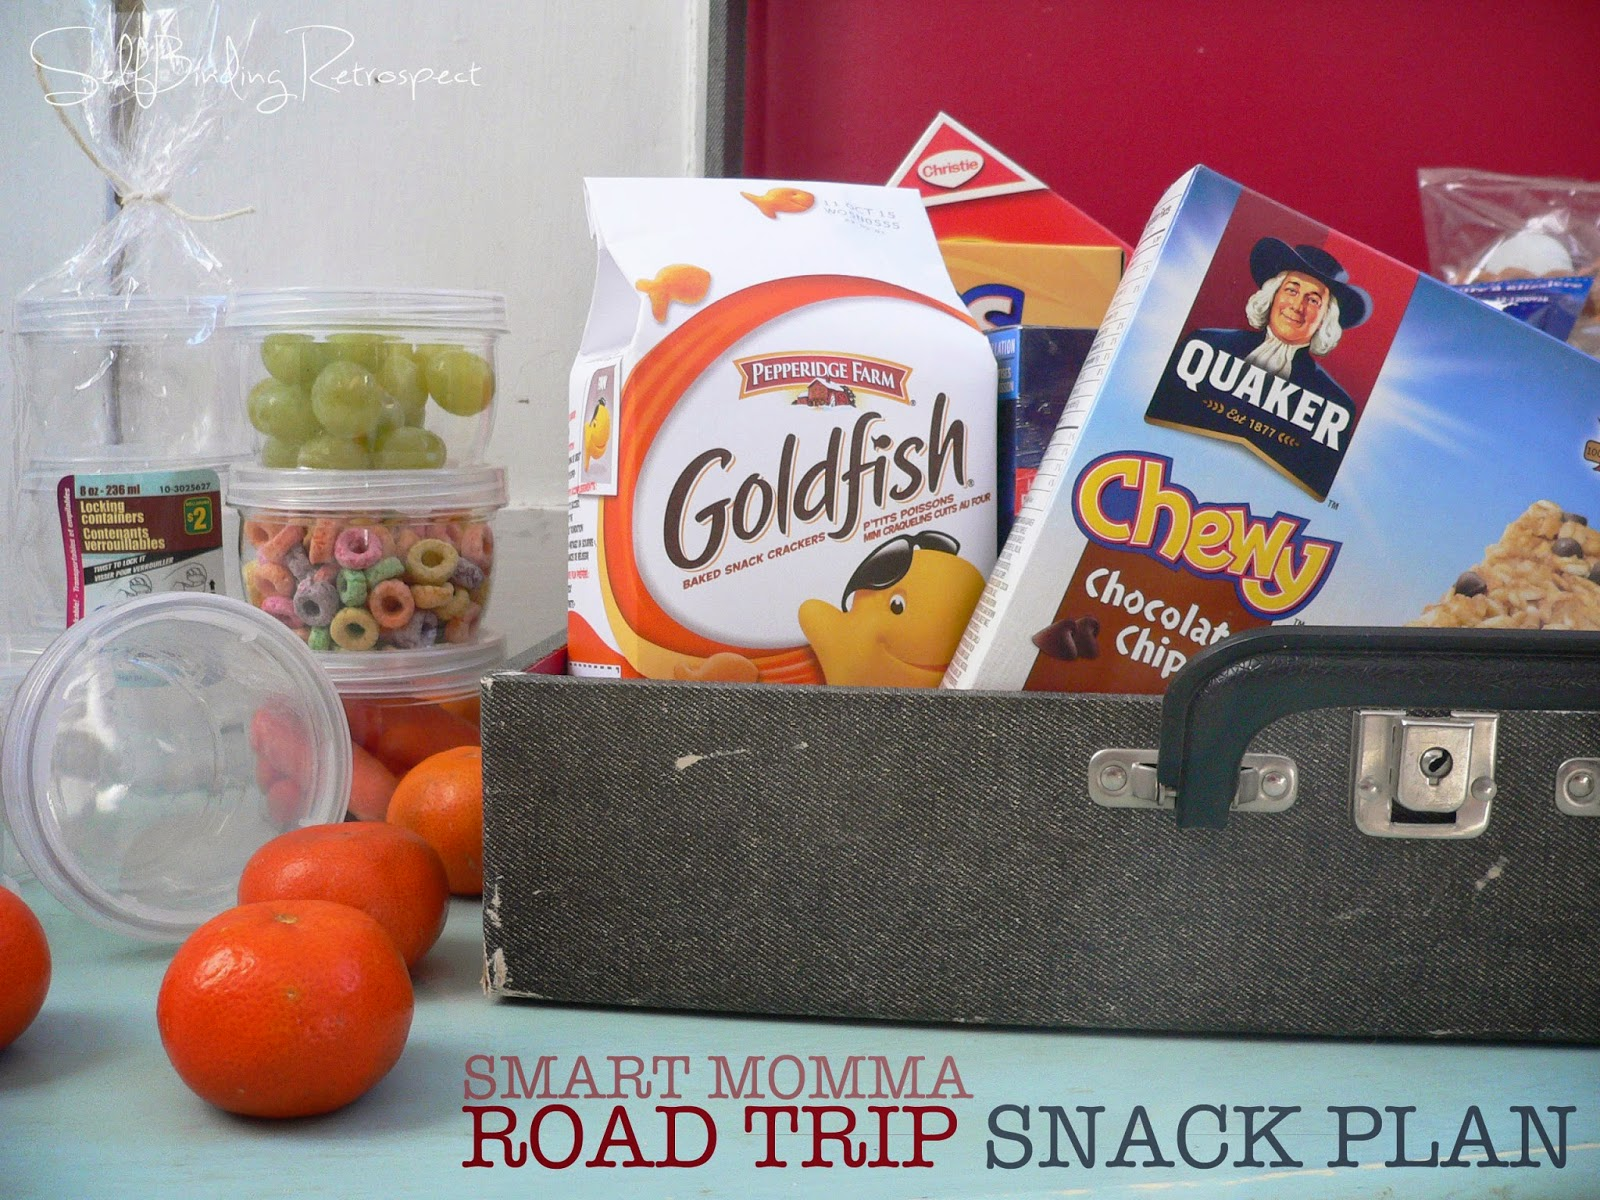 Smart momma snack plan for the road